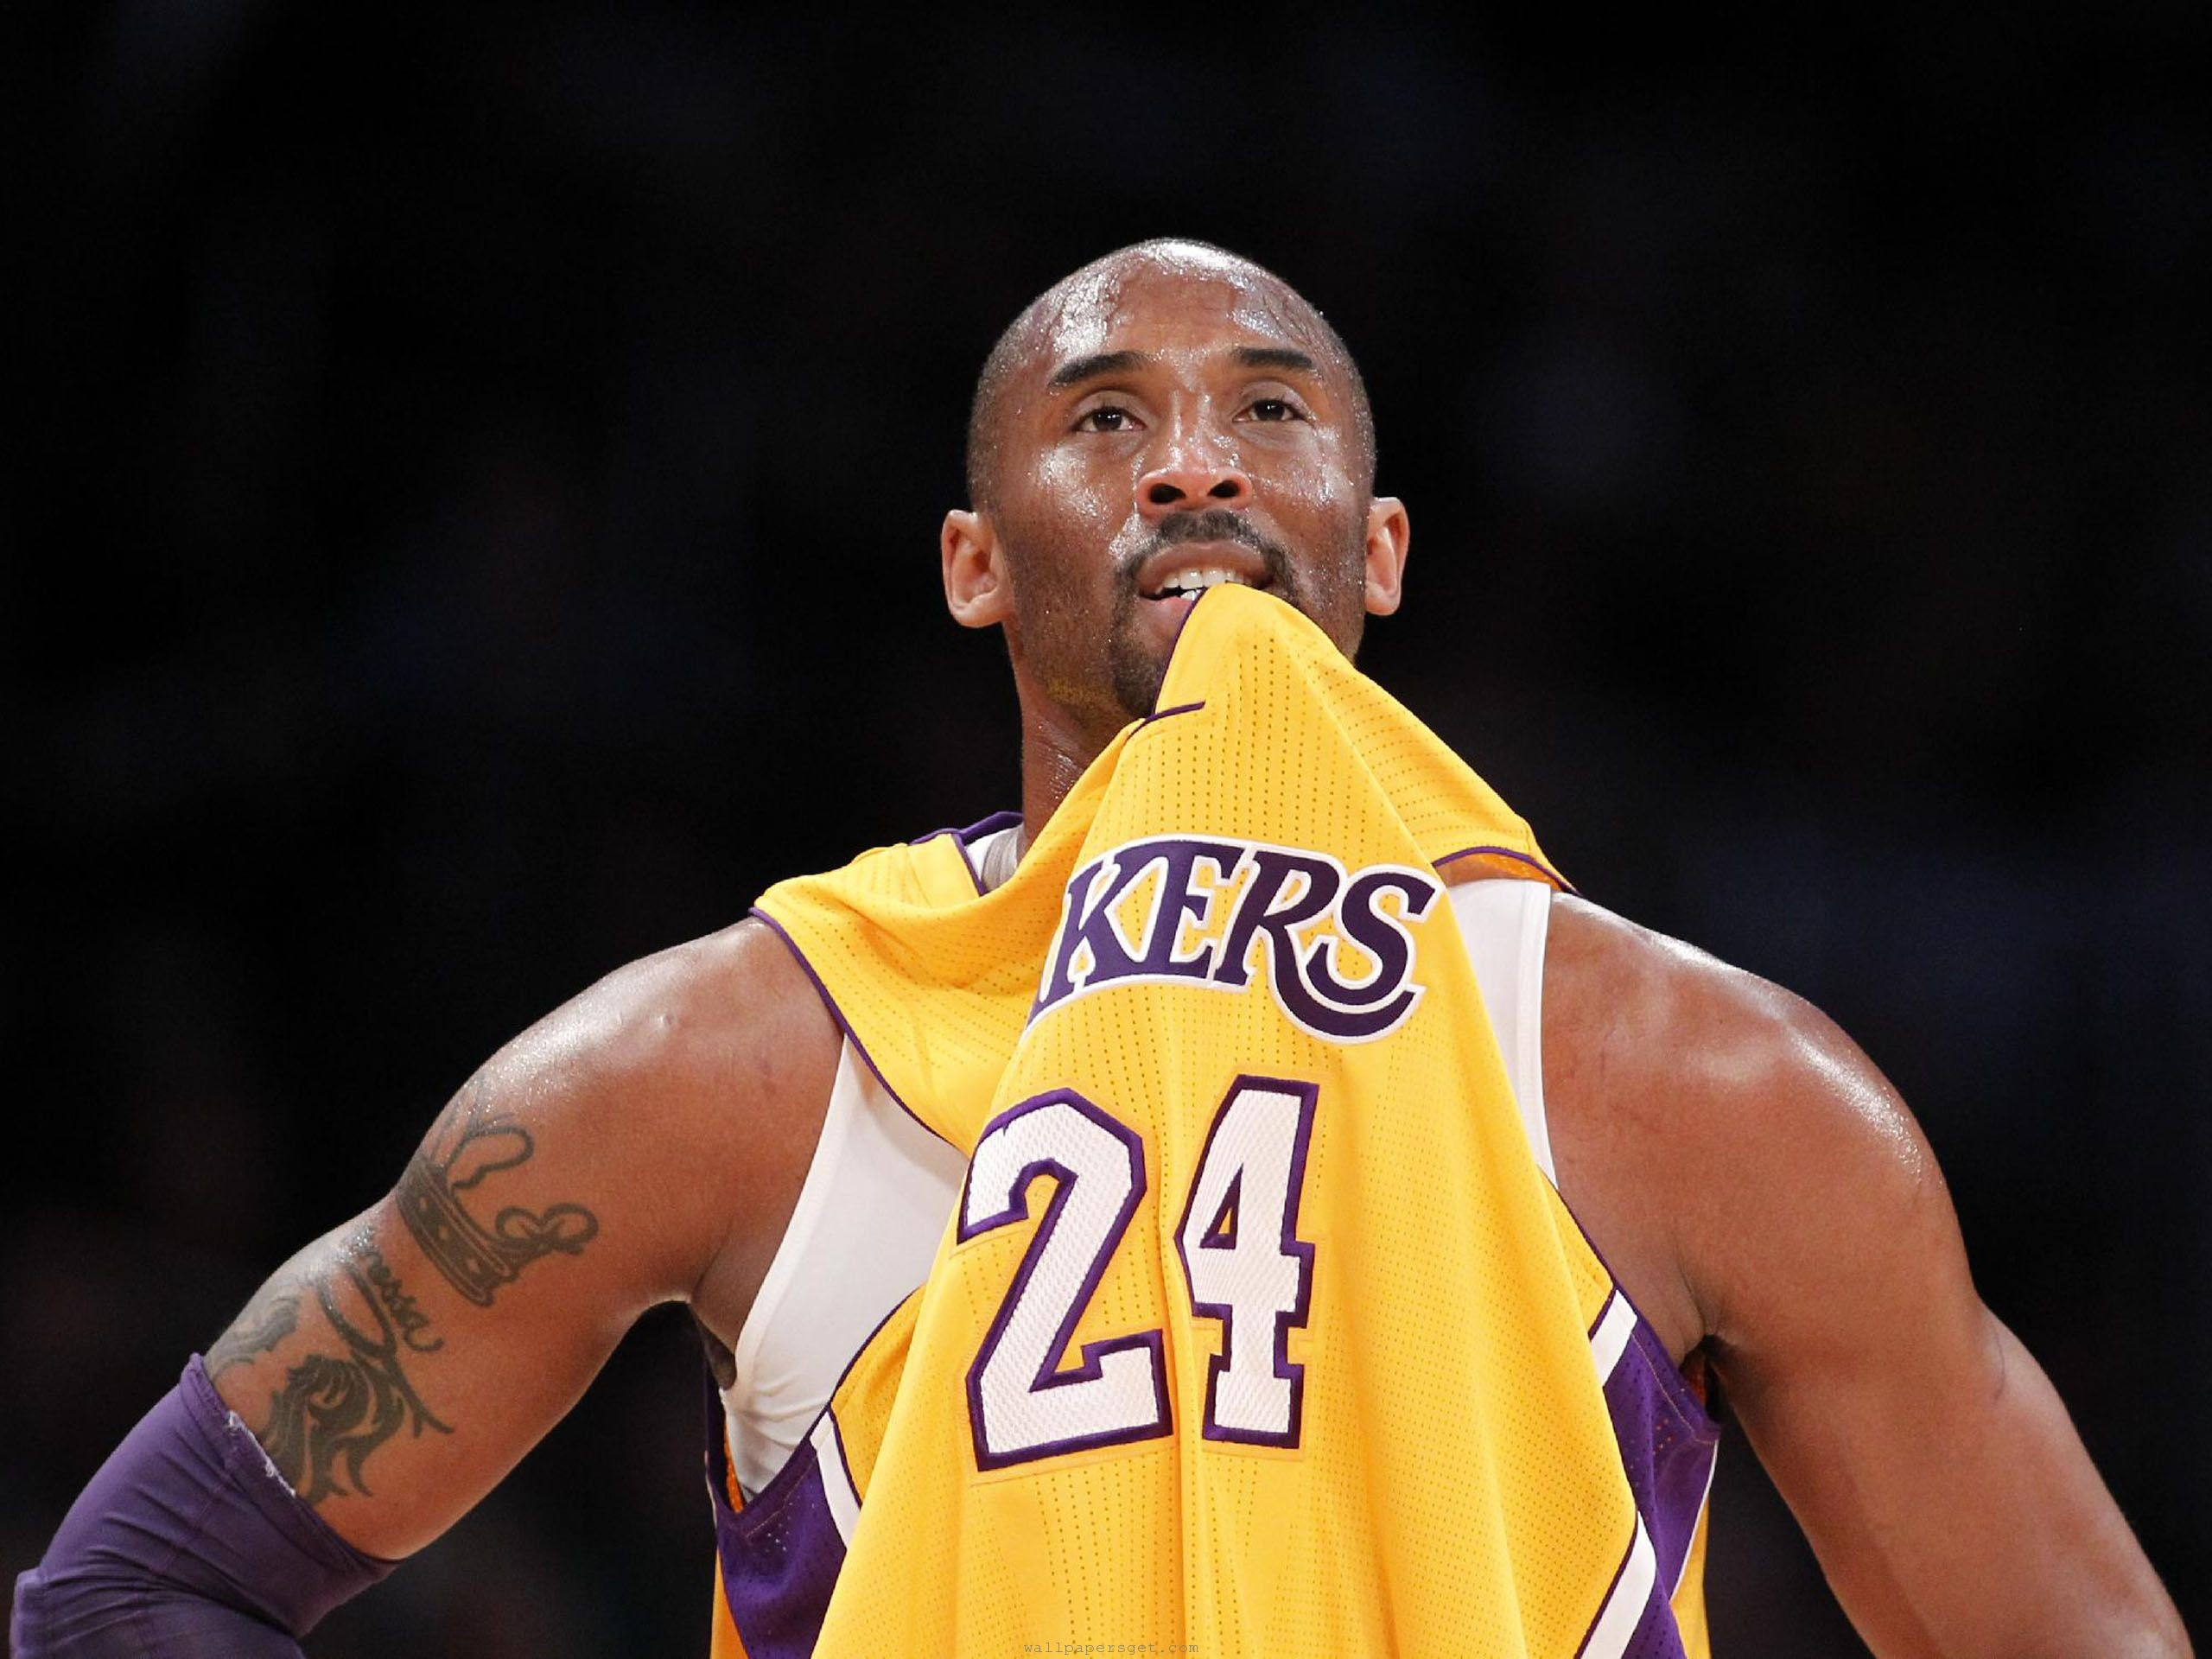 Images Of Kobe Bryant Wallpaper 2560x1920 19928